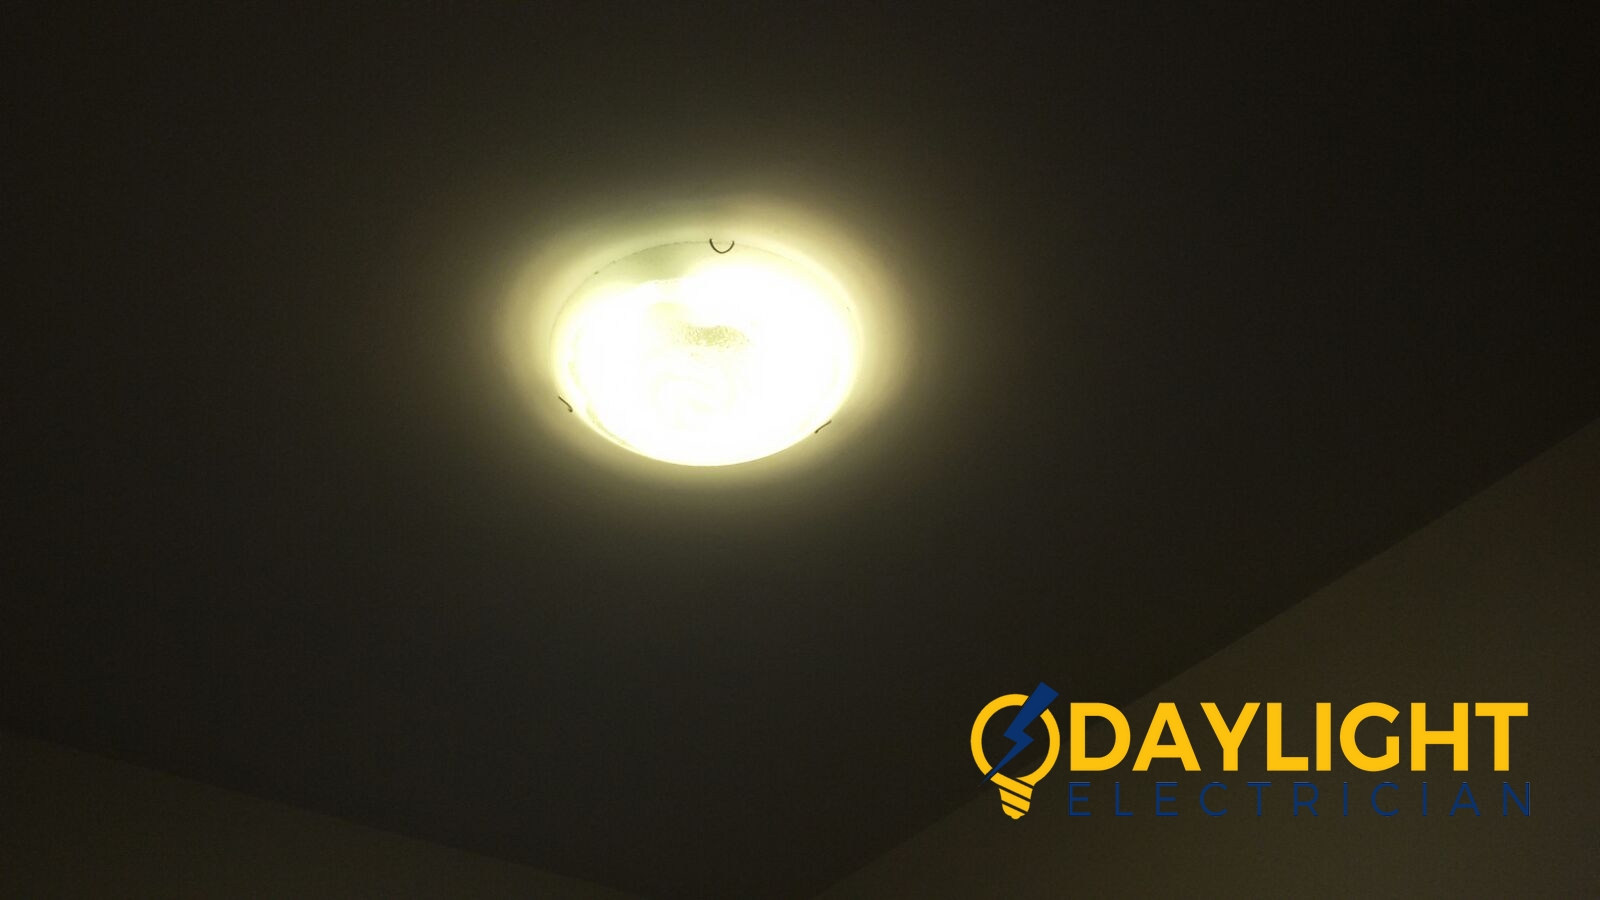 Change-light-switches-light-bulbs-electrician-singapore-landed-cashew-road-12_wm